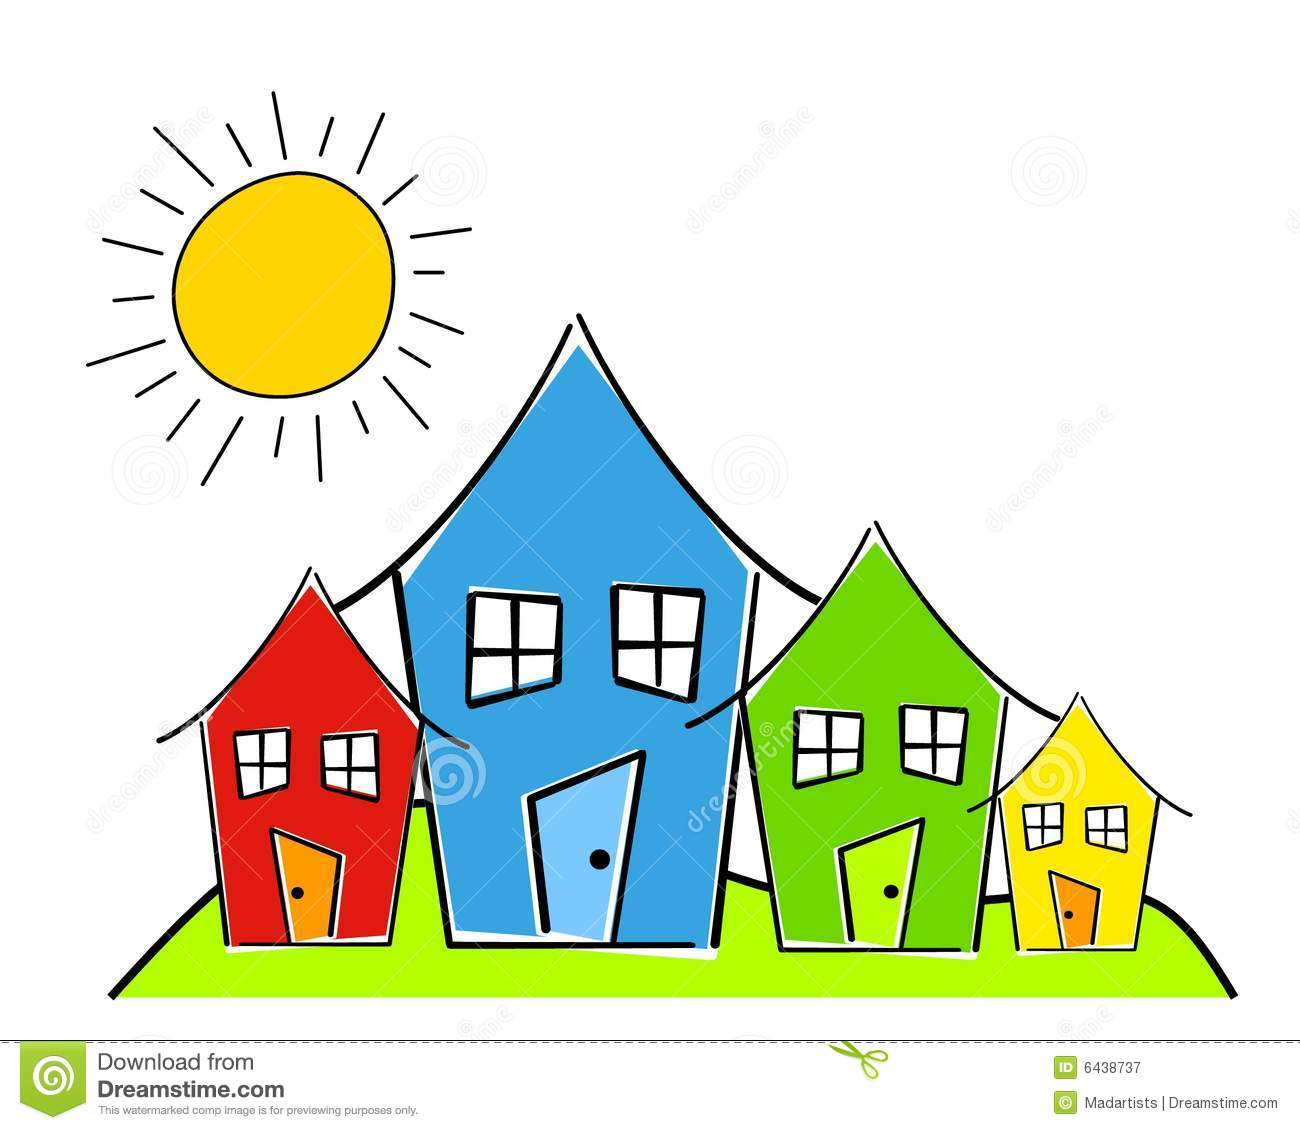 Row houses clipart clip art freeuse Childlike Row Of Houses Royalty Free Stock Photography - Image ... clip art freeuse